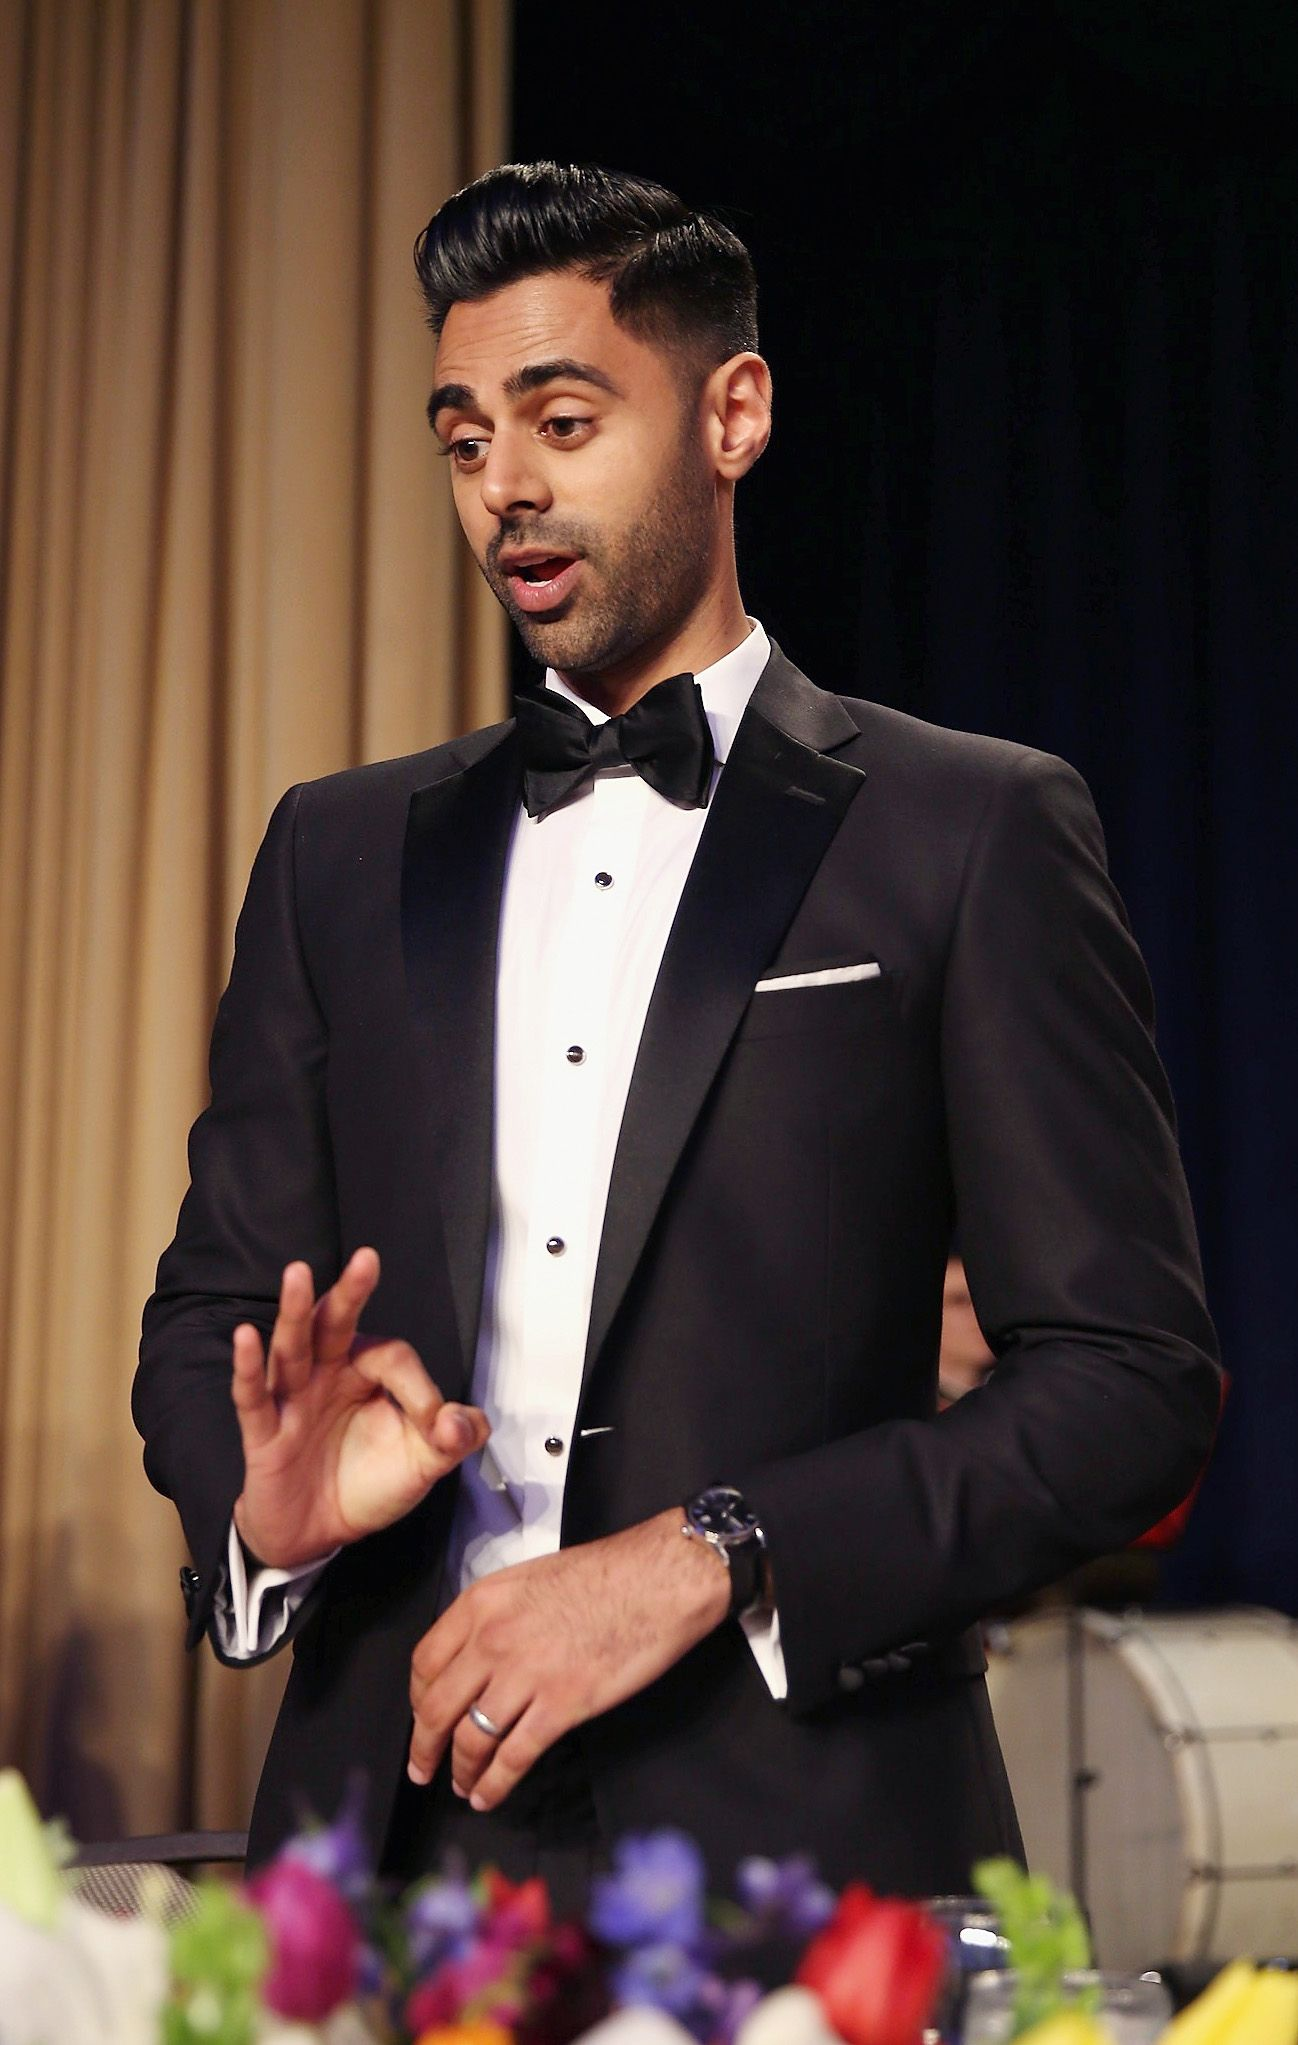 hasan minhaj arrested developmenthasan minhaj bethany reed, hasan minhaj congressional dinner, hasan minhaj with wife, hasan minhaj instagram, hasan minhaj, hasan minhaj prom, hasan minhaj wikipedia, hasan minhaj married, hasan minhaj homecoming, hasan minhaj wedding, hasan minhaj gay, hasan minhaj bio, hasan minhaj youtube, hasan minhaj net worth, hasan minhaj the moth, hasan minhaj twitter, hasan minhaj religion, hasan minhaj stand up, hasan minhaj arrested development, hasan minhaj sister